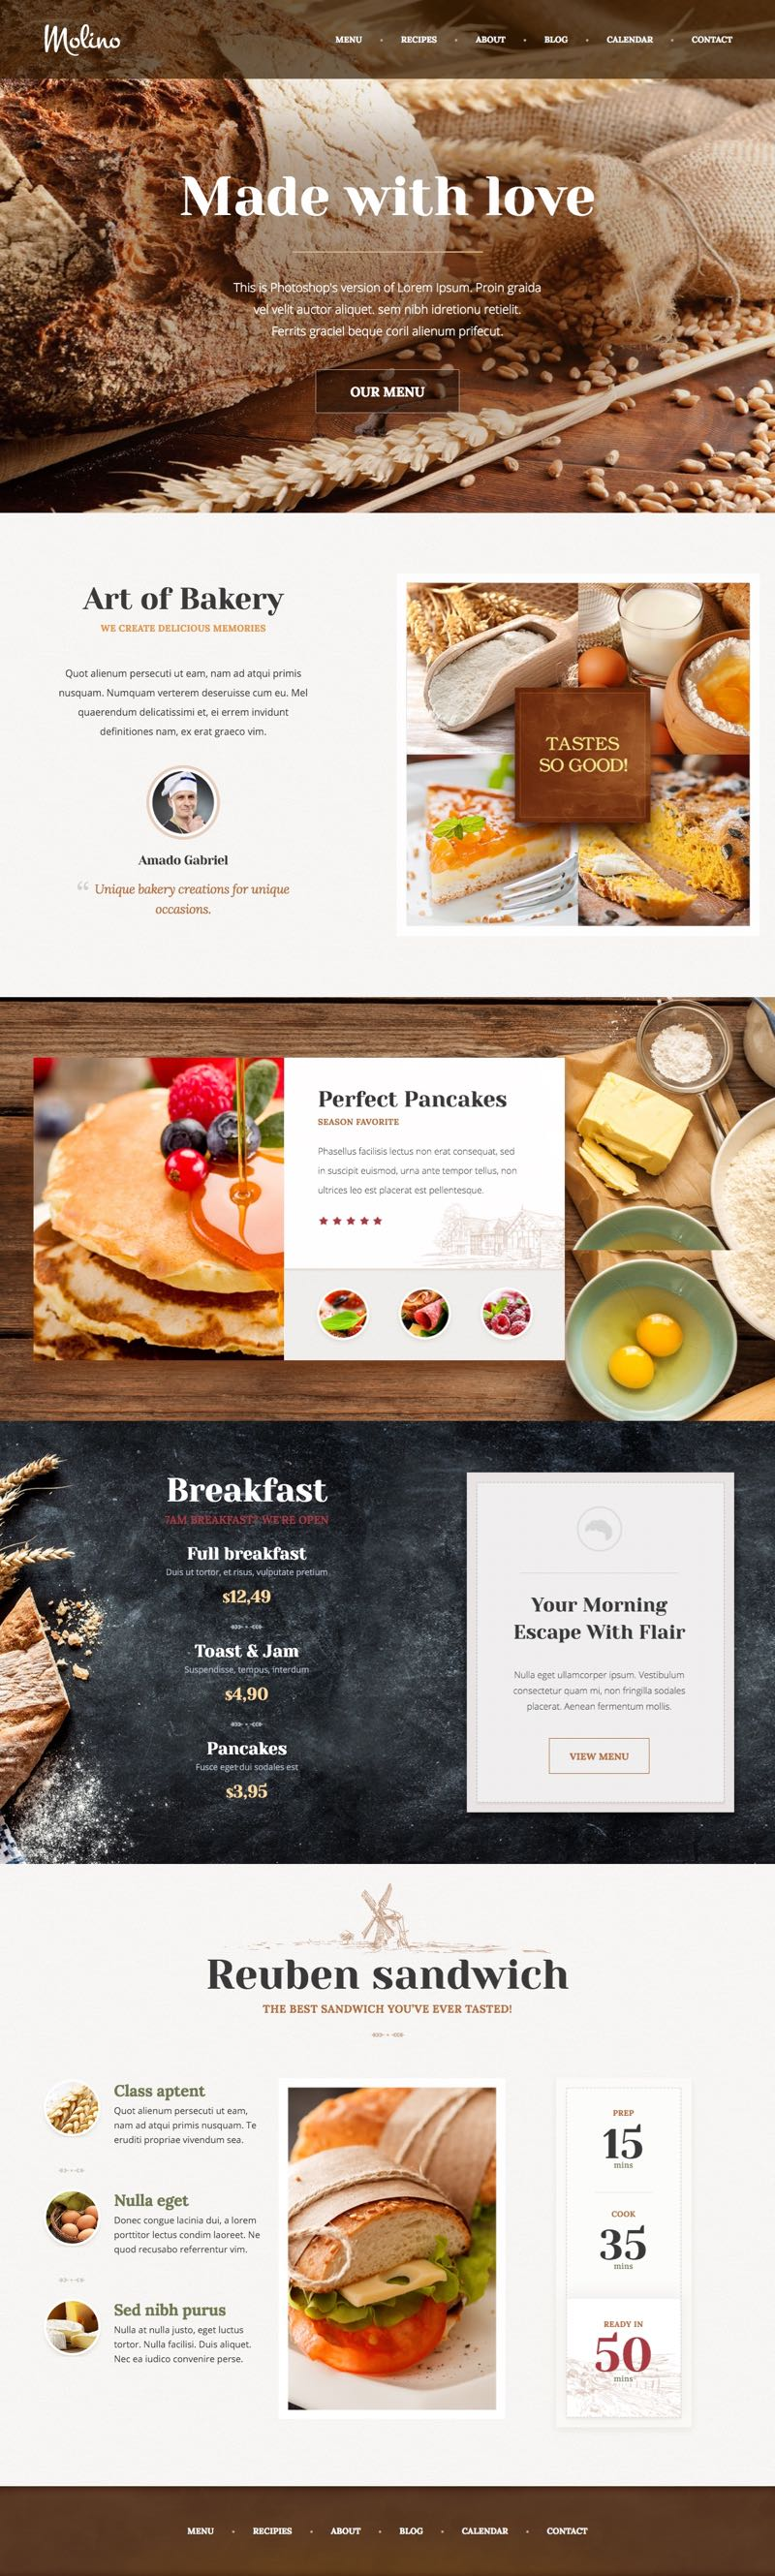 Molino WordPress Bakery Theme